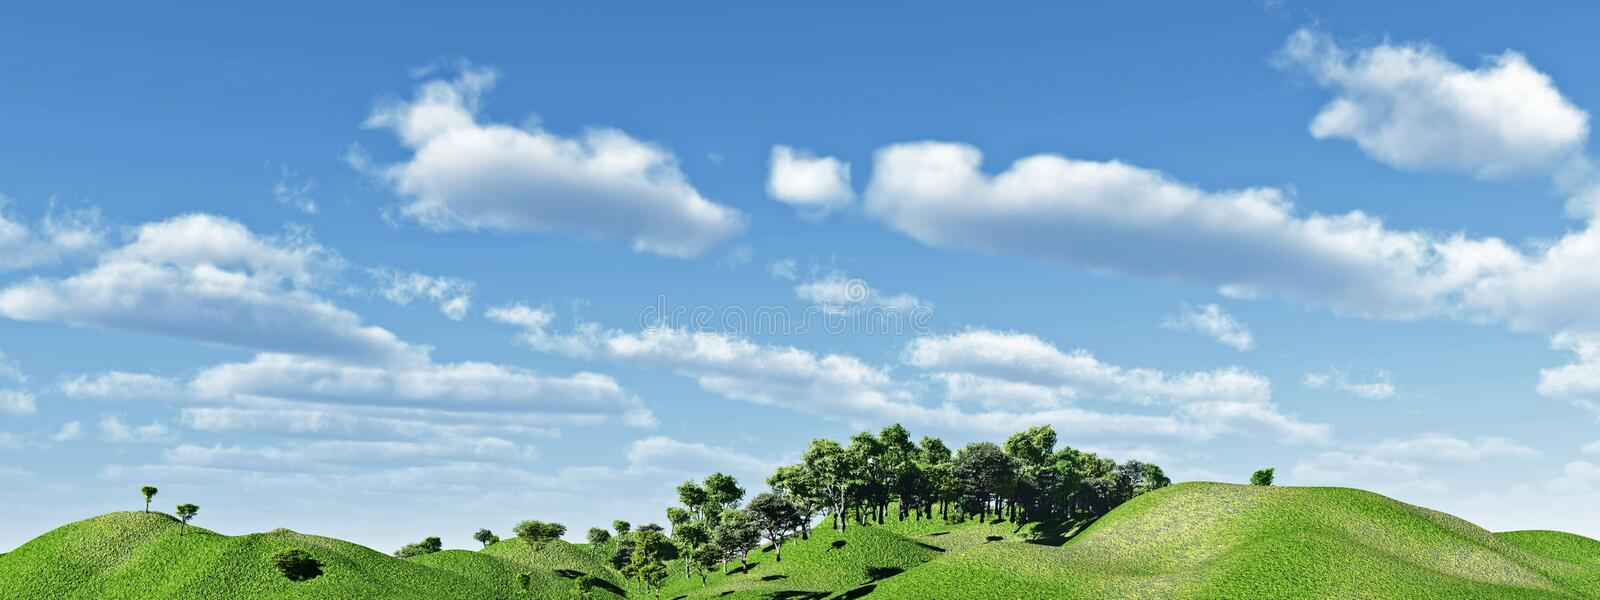 Download Green hills stock illustration. Image of rural, cloudy - 3617144